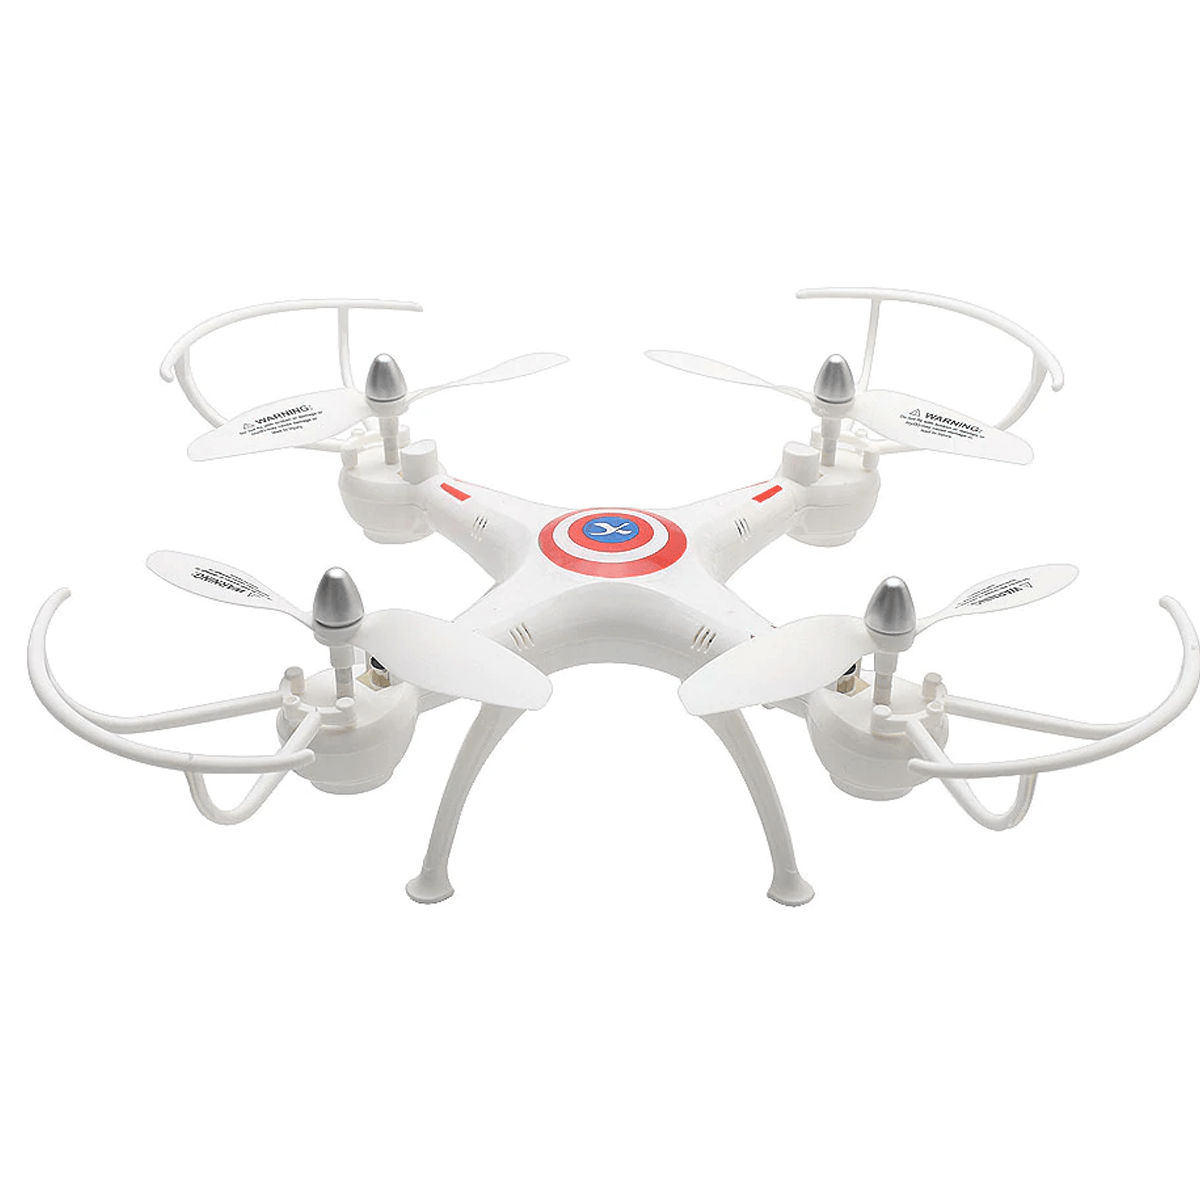 mt290 6 axis gyro quad copter Mini drone white